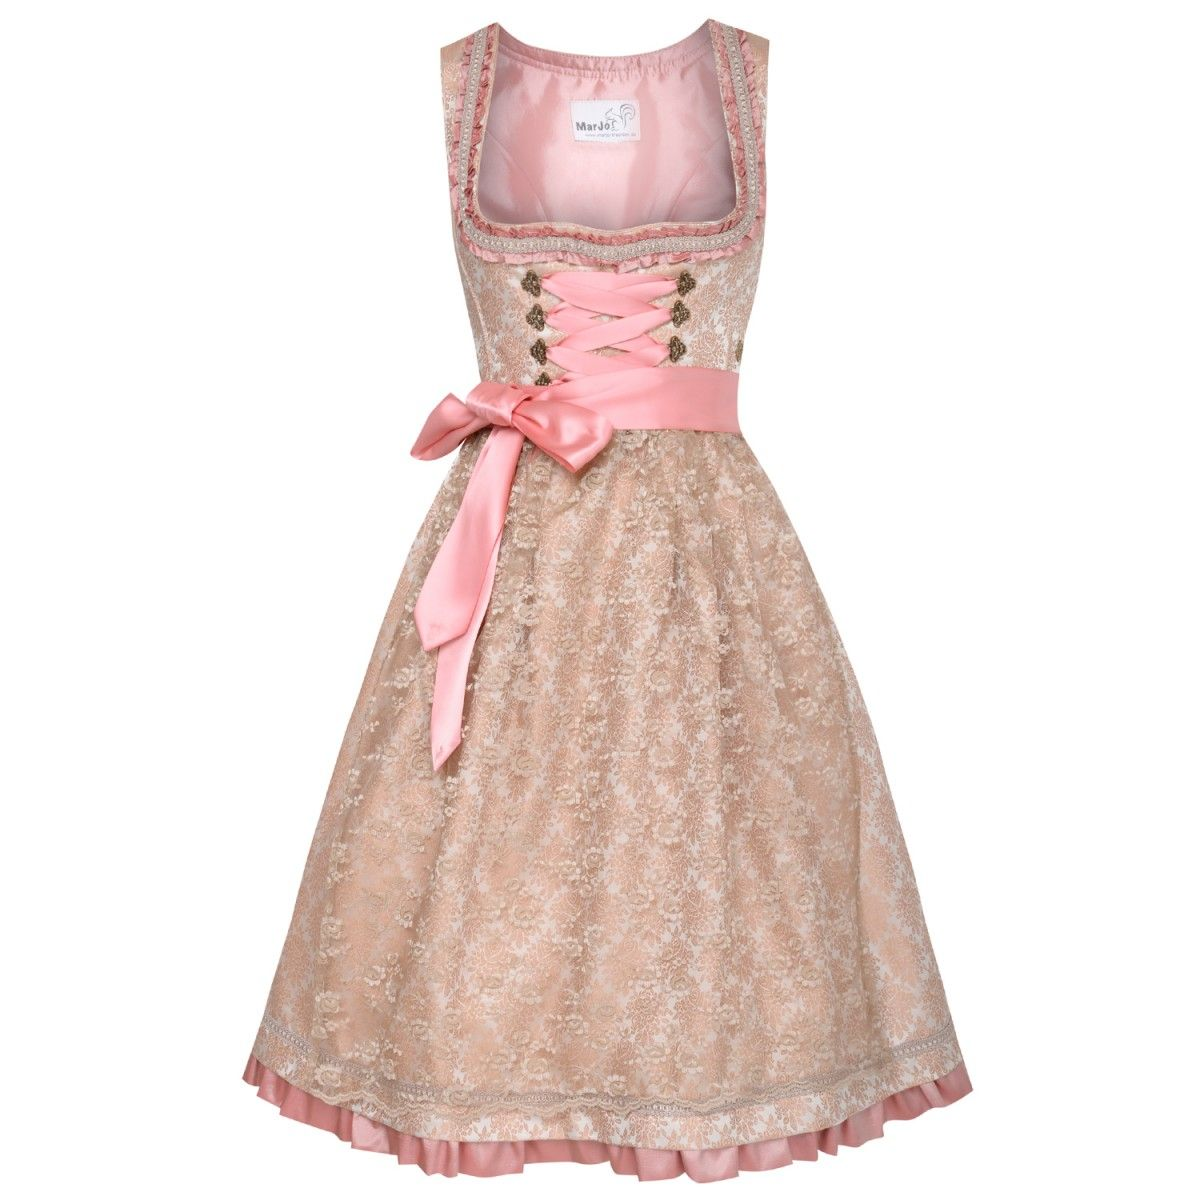 Pin By Kitty Graves On Want It Fashion Victorian Dress Dresses